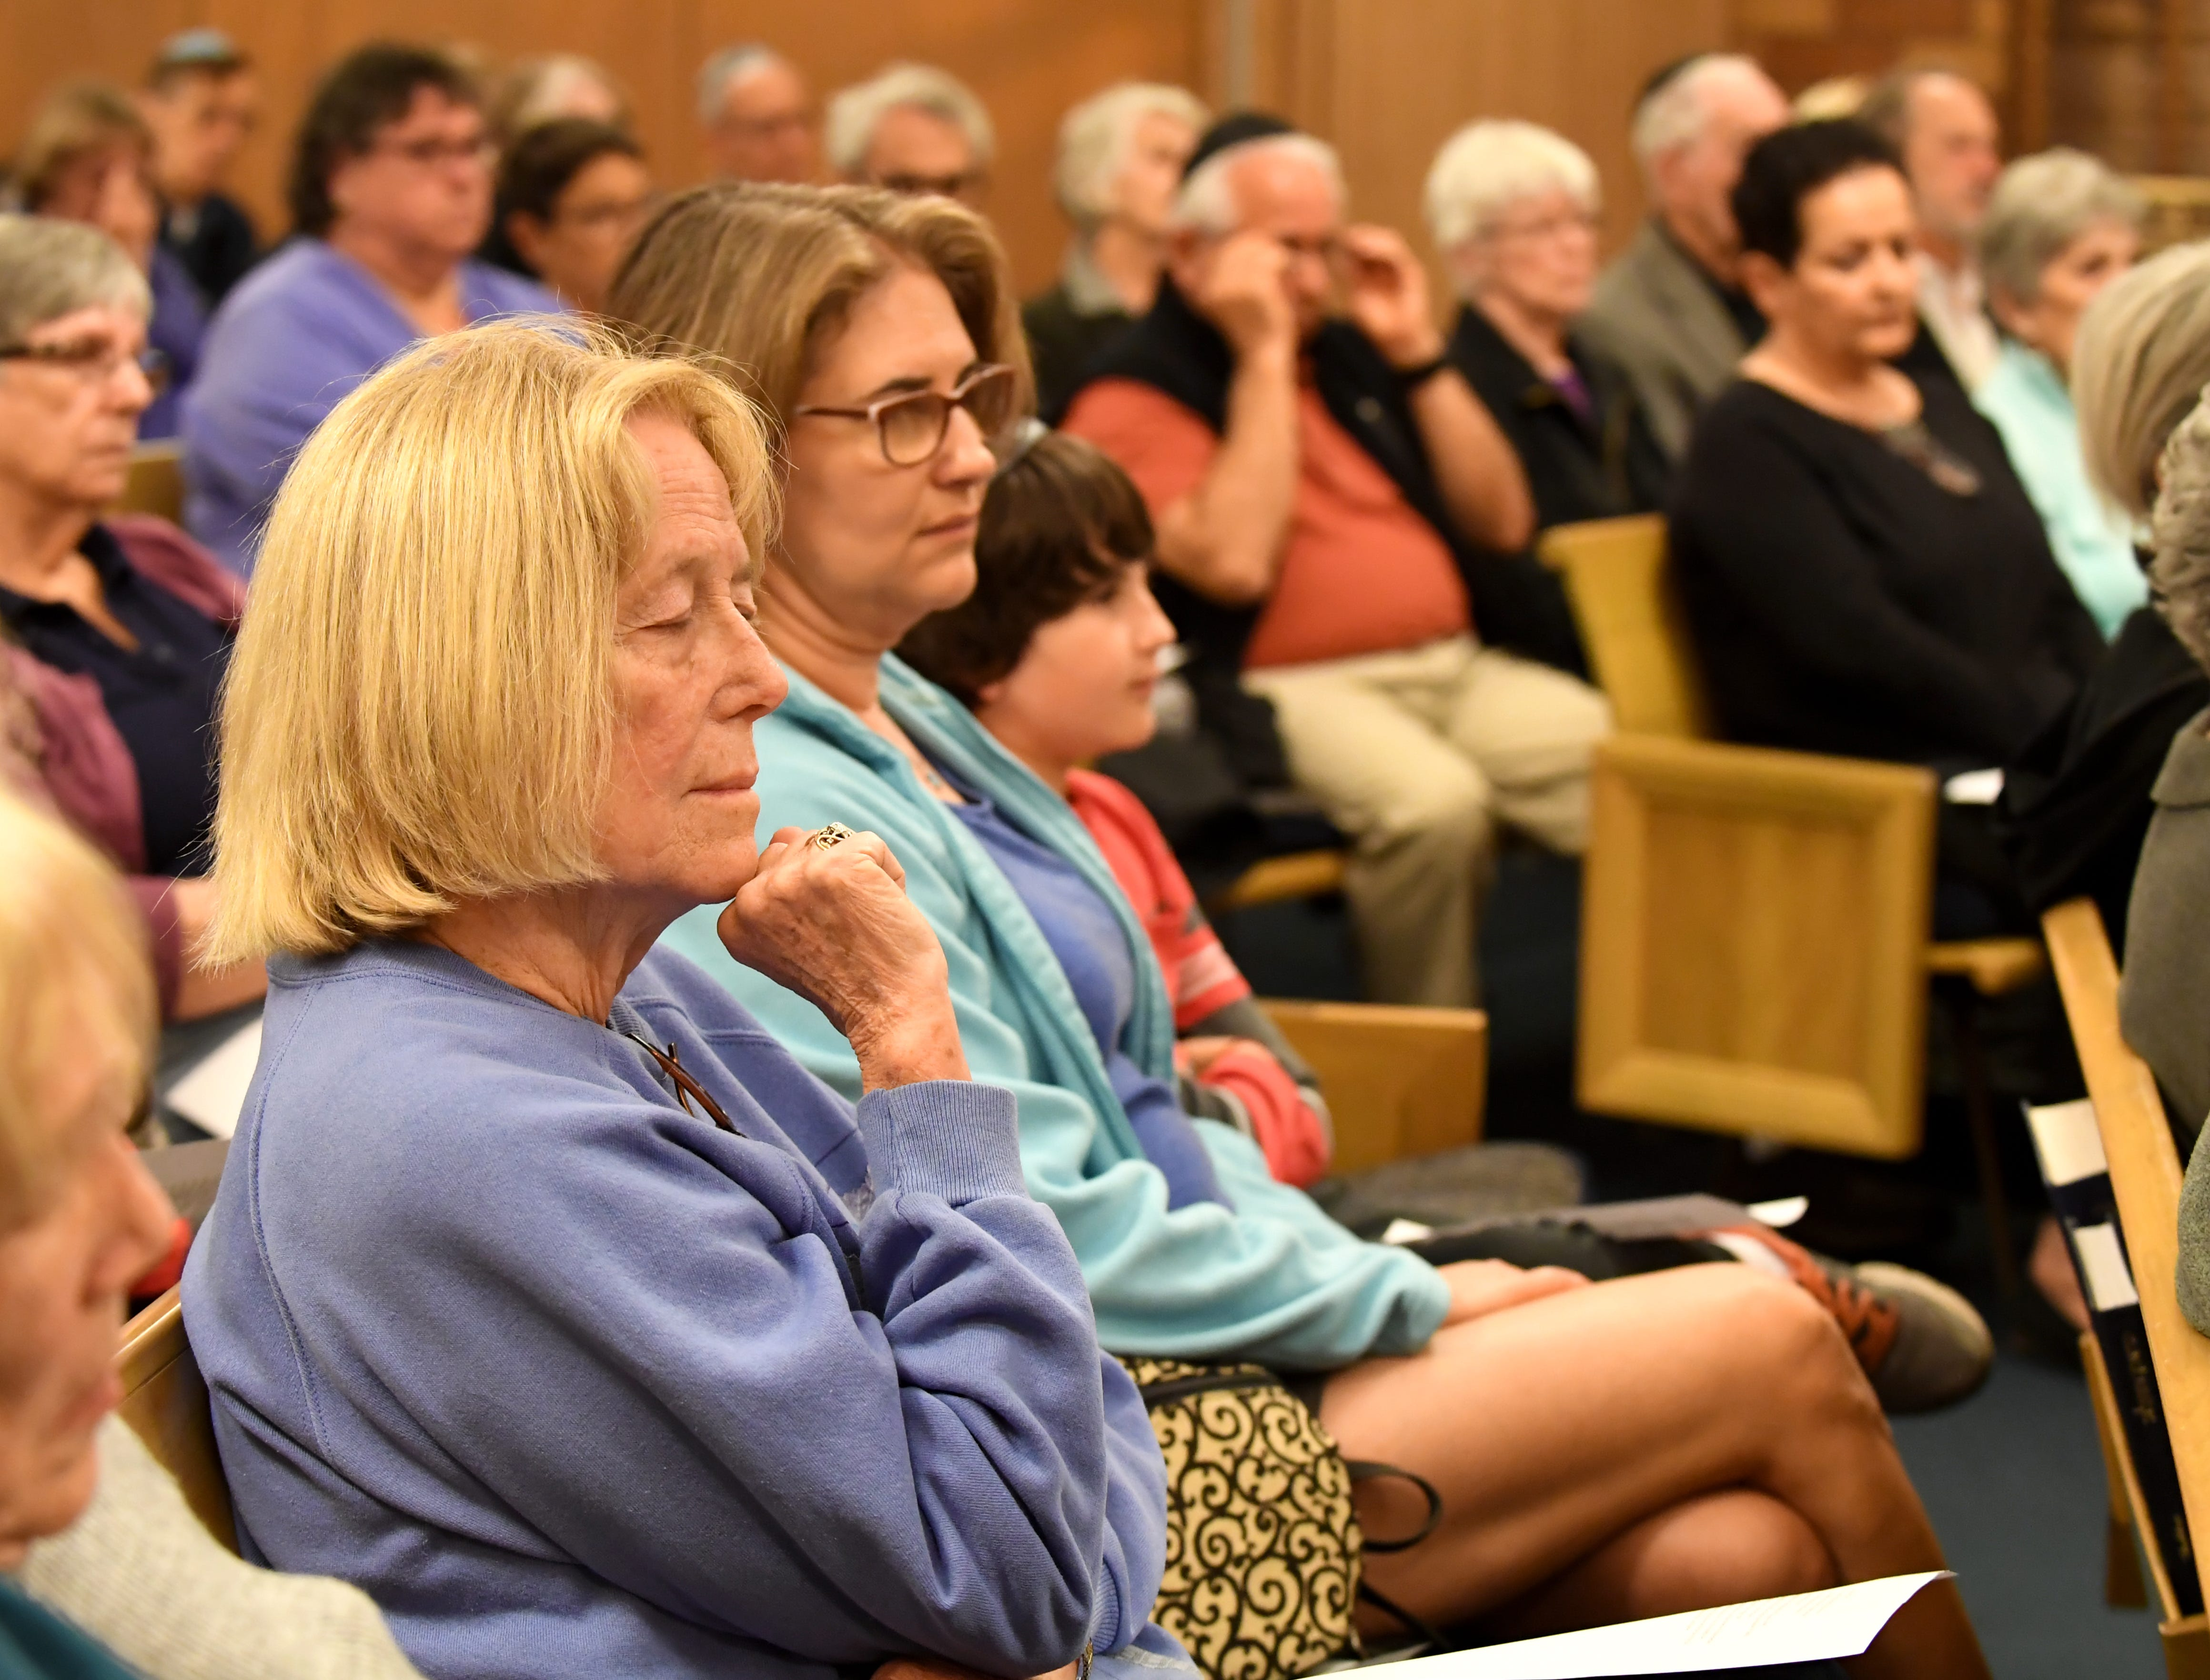 Ginger Bassett (left) of First United Methodist Church closes her eyes during a gathering at Temple Beth El on Monday to mourn those killed at a Pittsburgh synagogue Saturday.